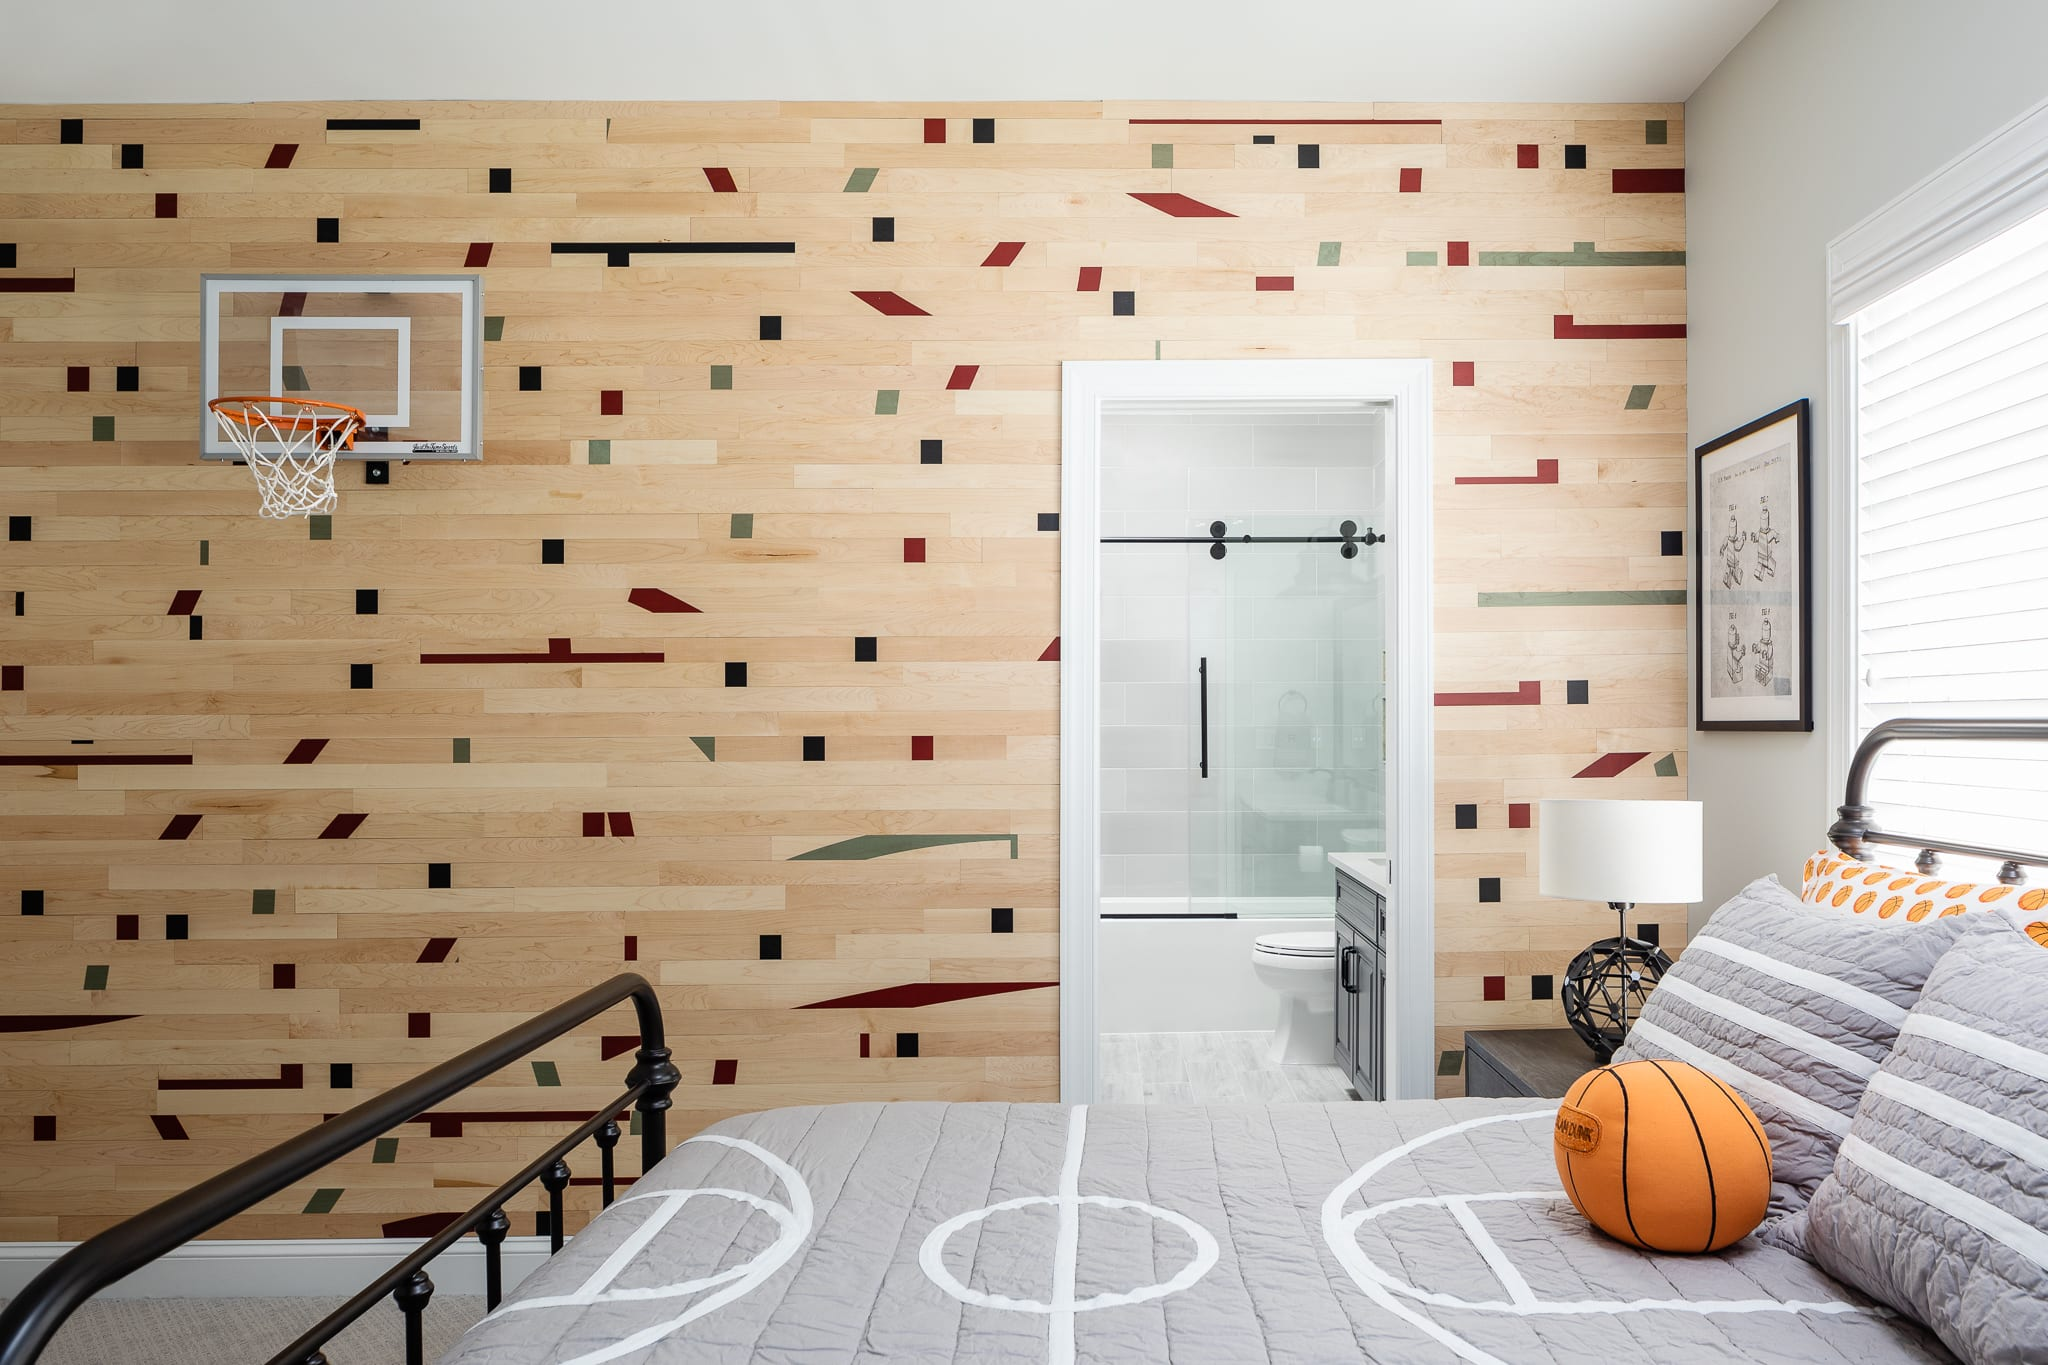 Kids basketball theme room by Grace Thomas Design with hoop on a wall covered with Fanwall real maple peel and stick planks with custom printed basketball court markings in an abstract pattern.